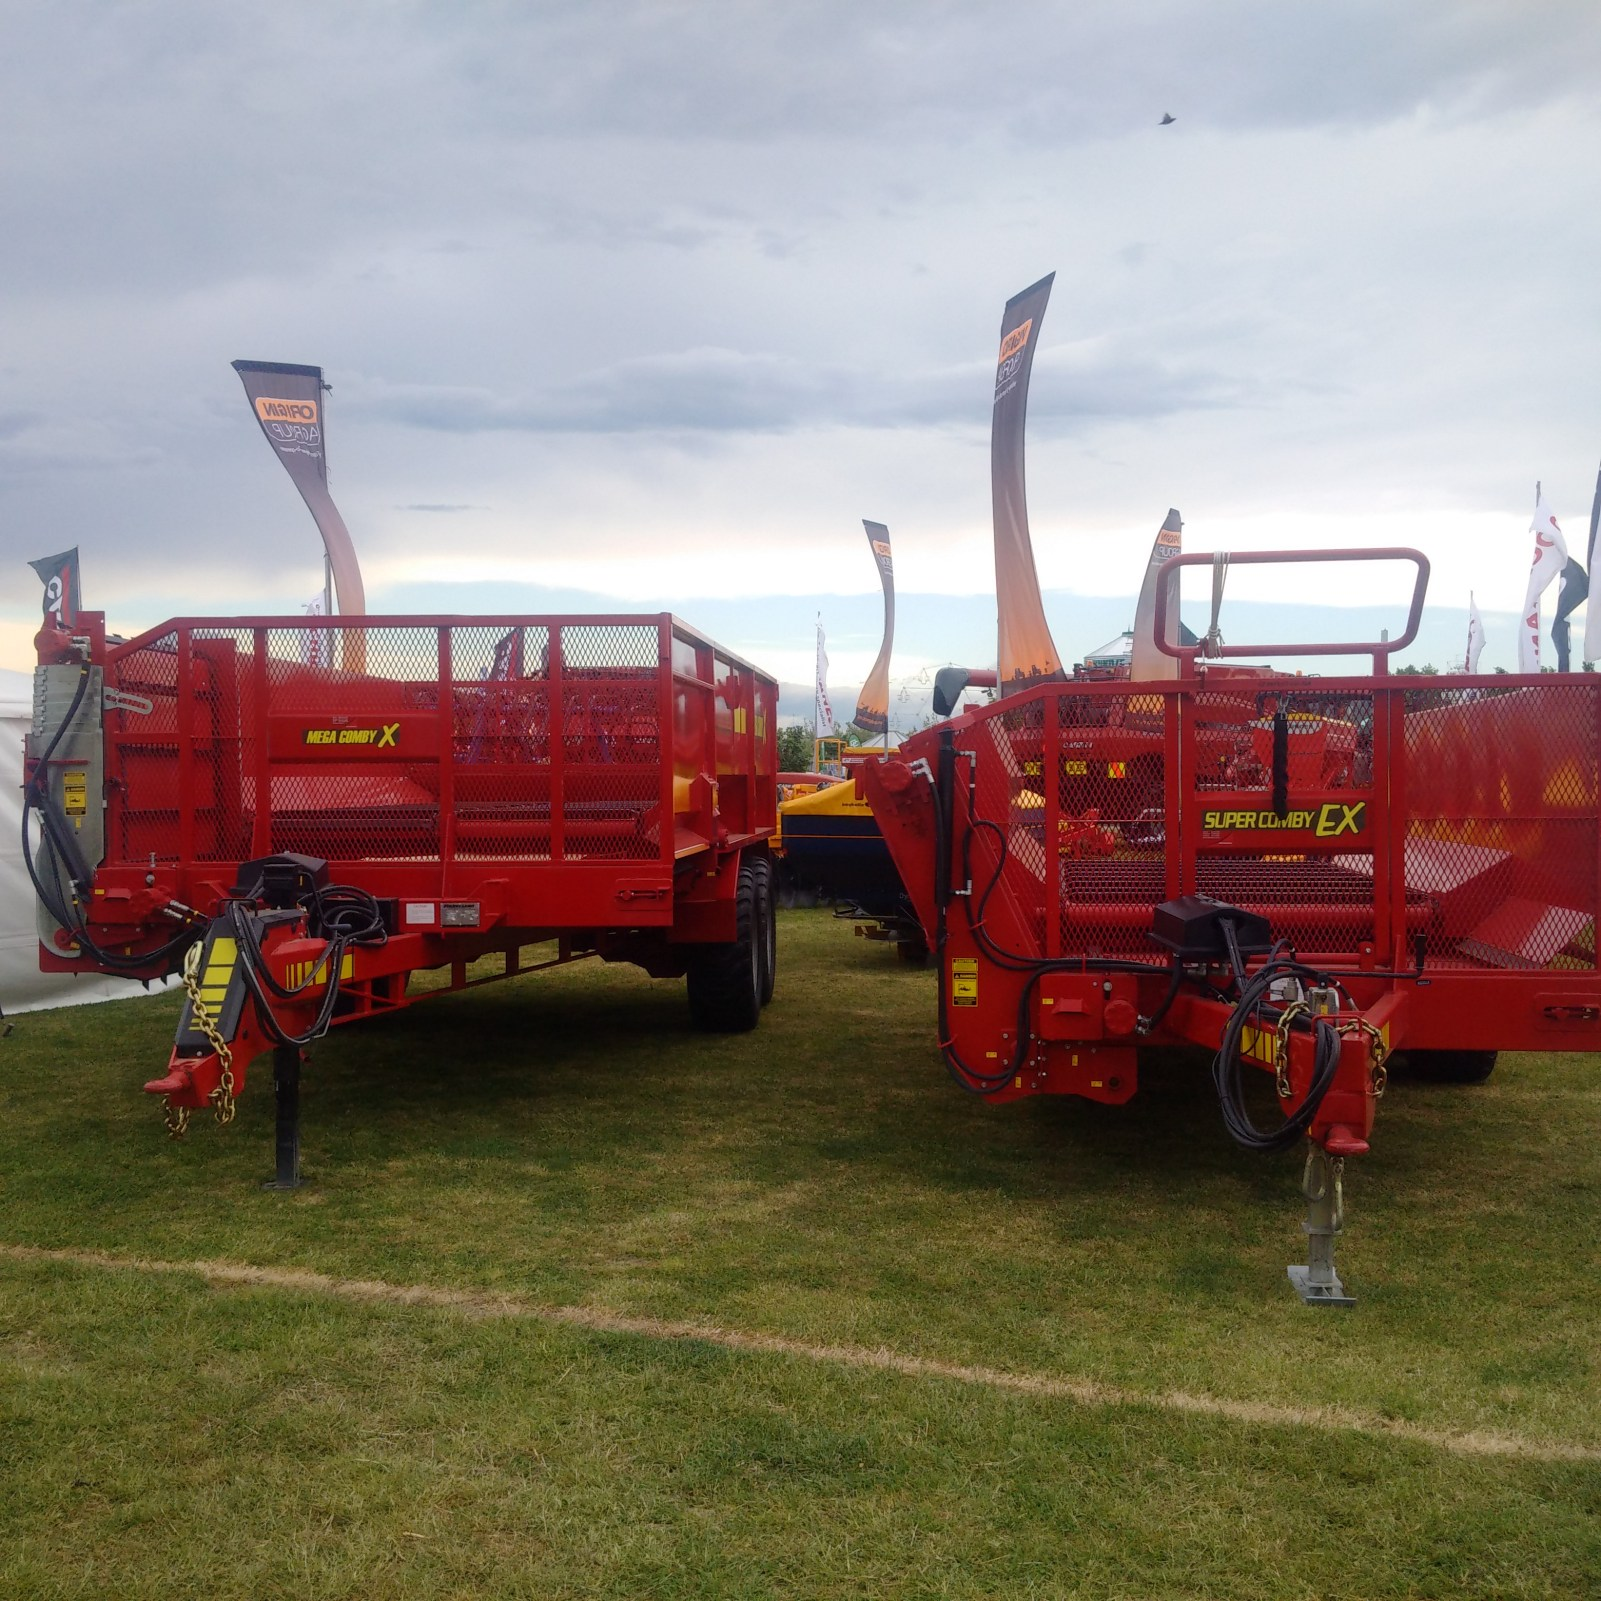 Robertson branded wagons at the Christchurch show!.jpg